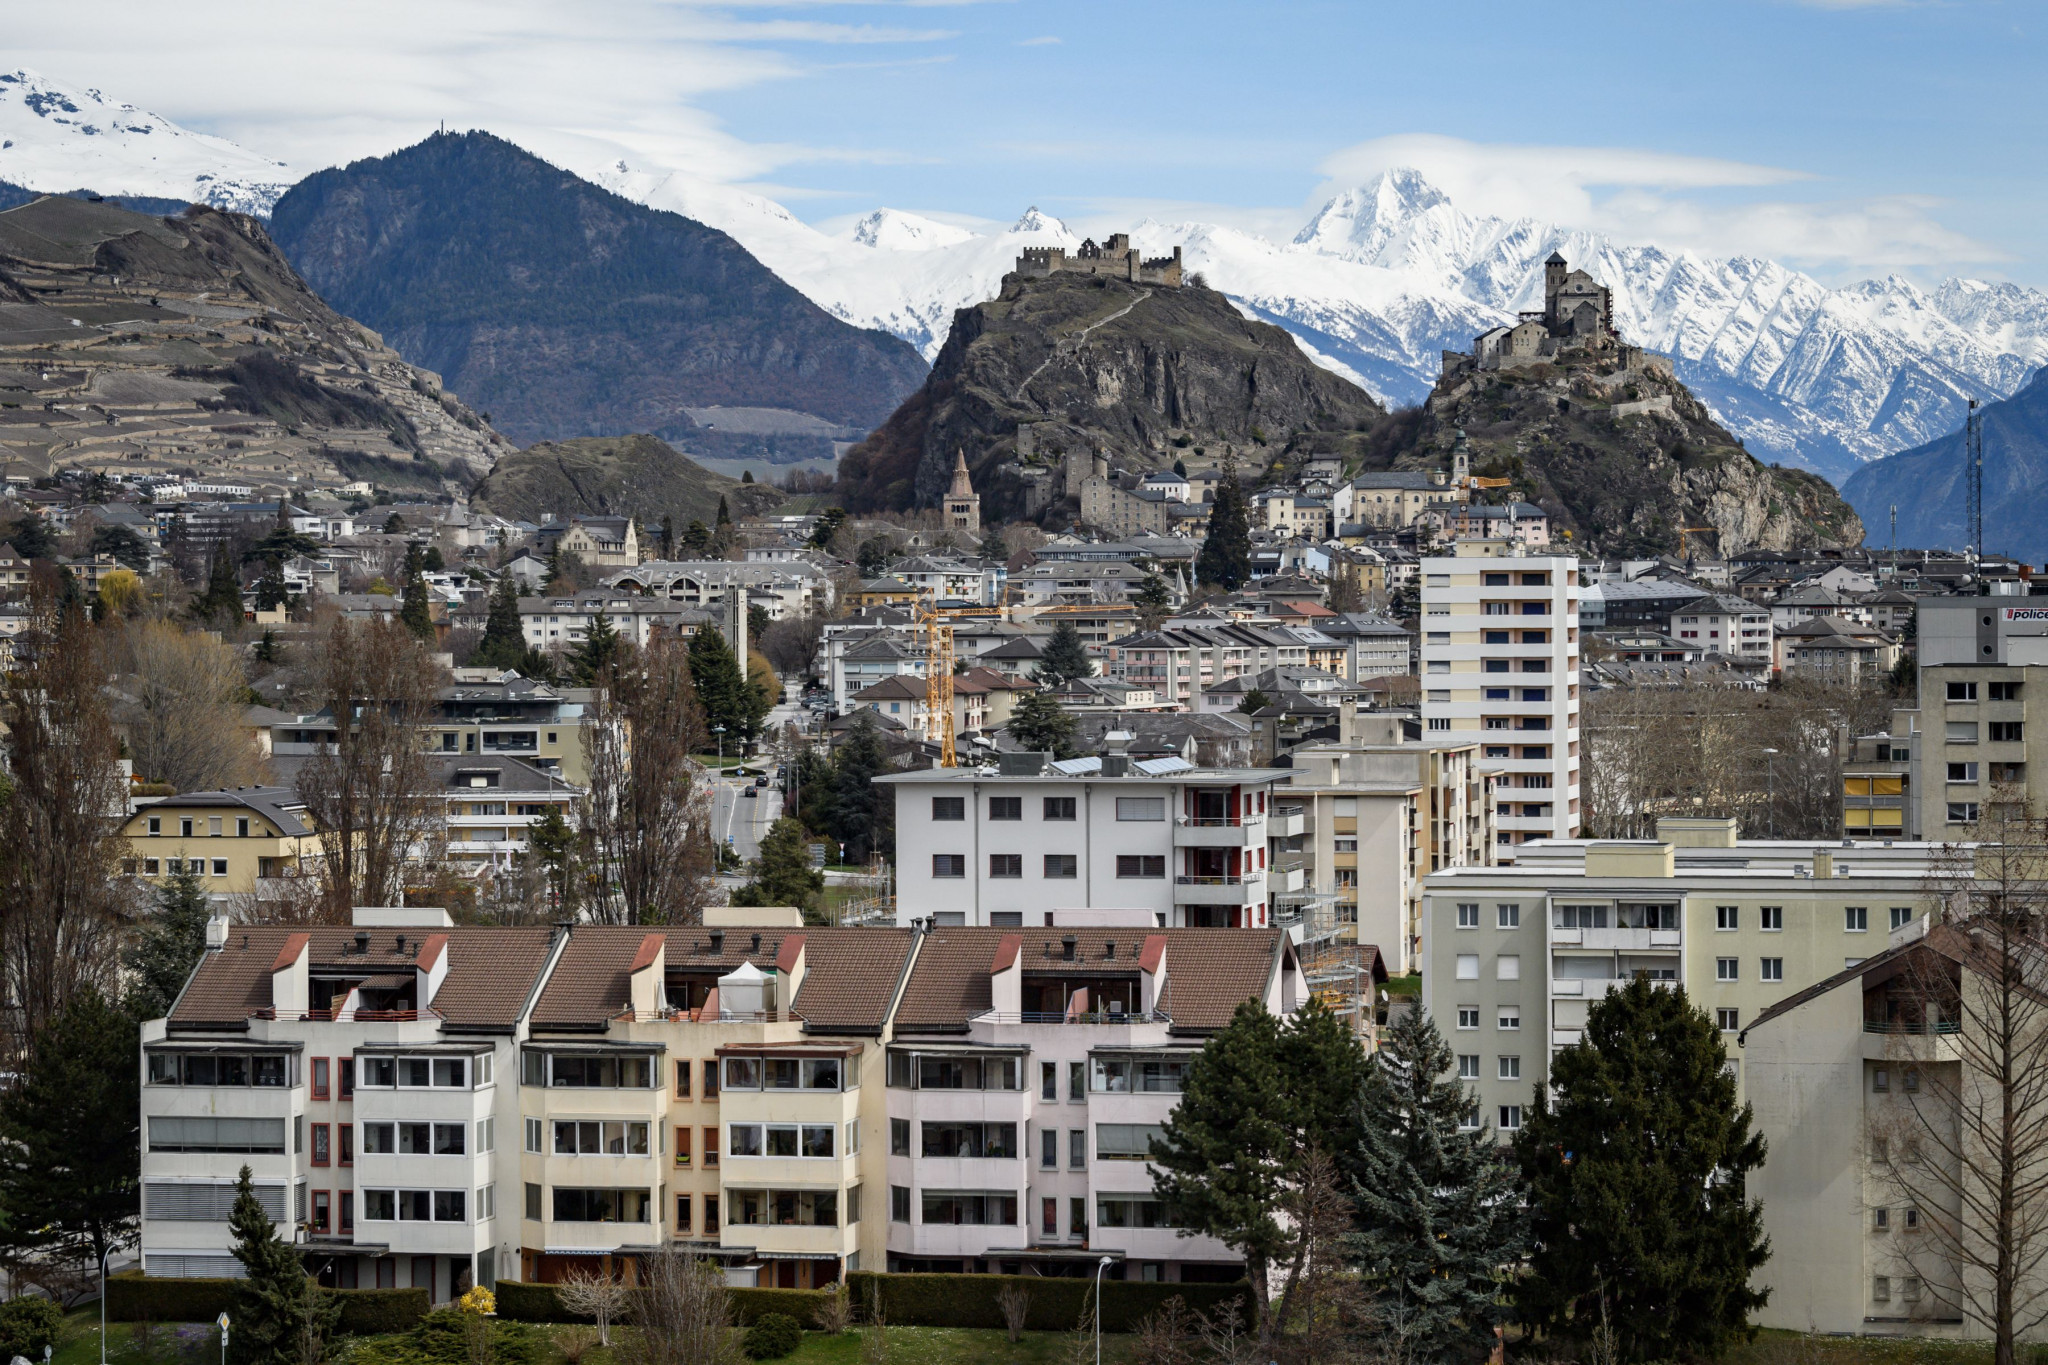 Sion 2026 hope approval of ski jumping plans offers good sign on eve of referendum